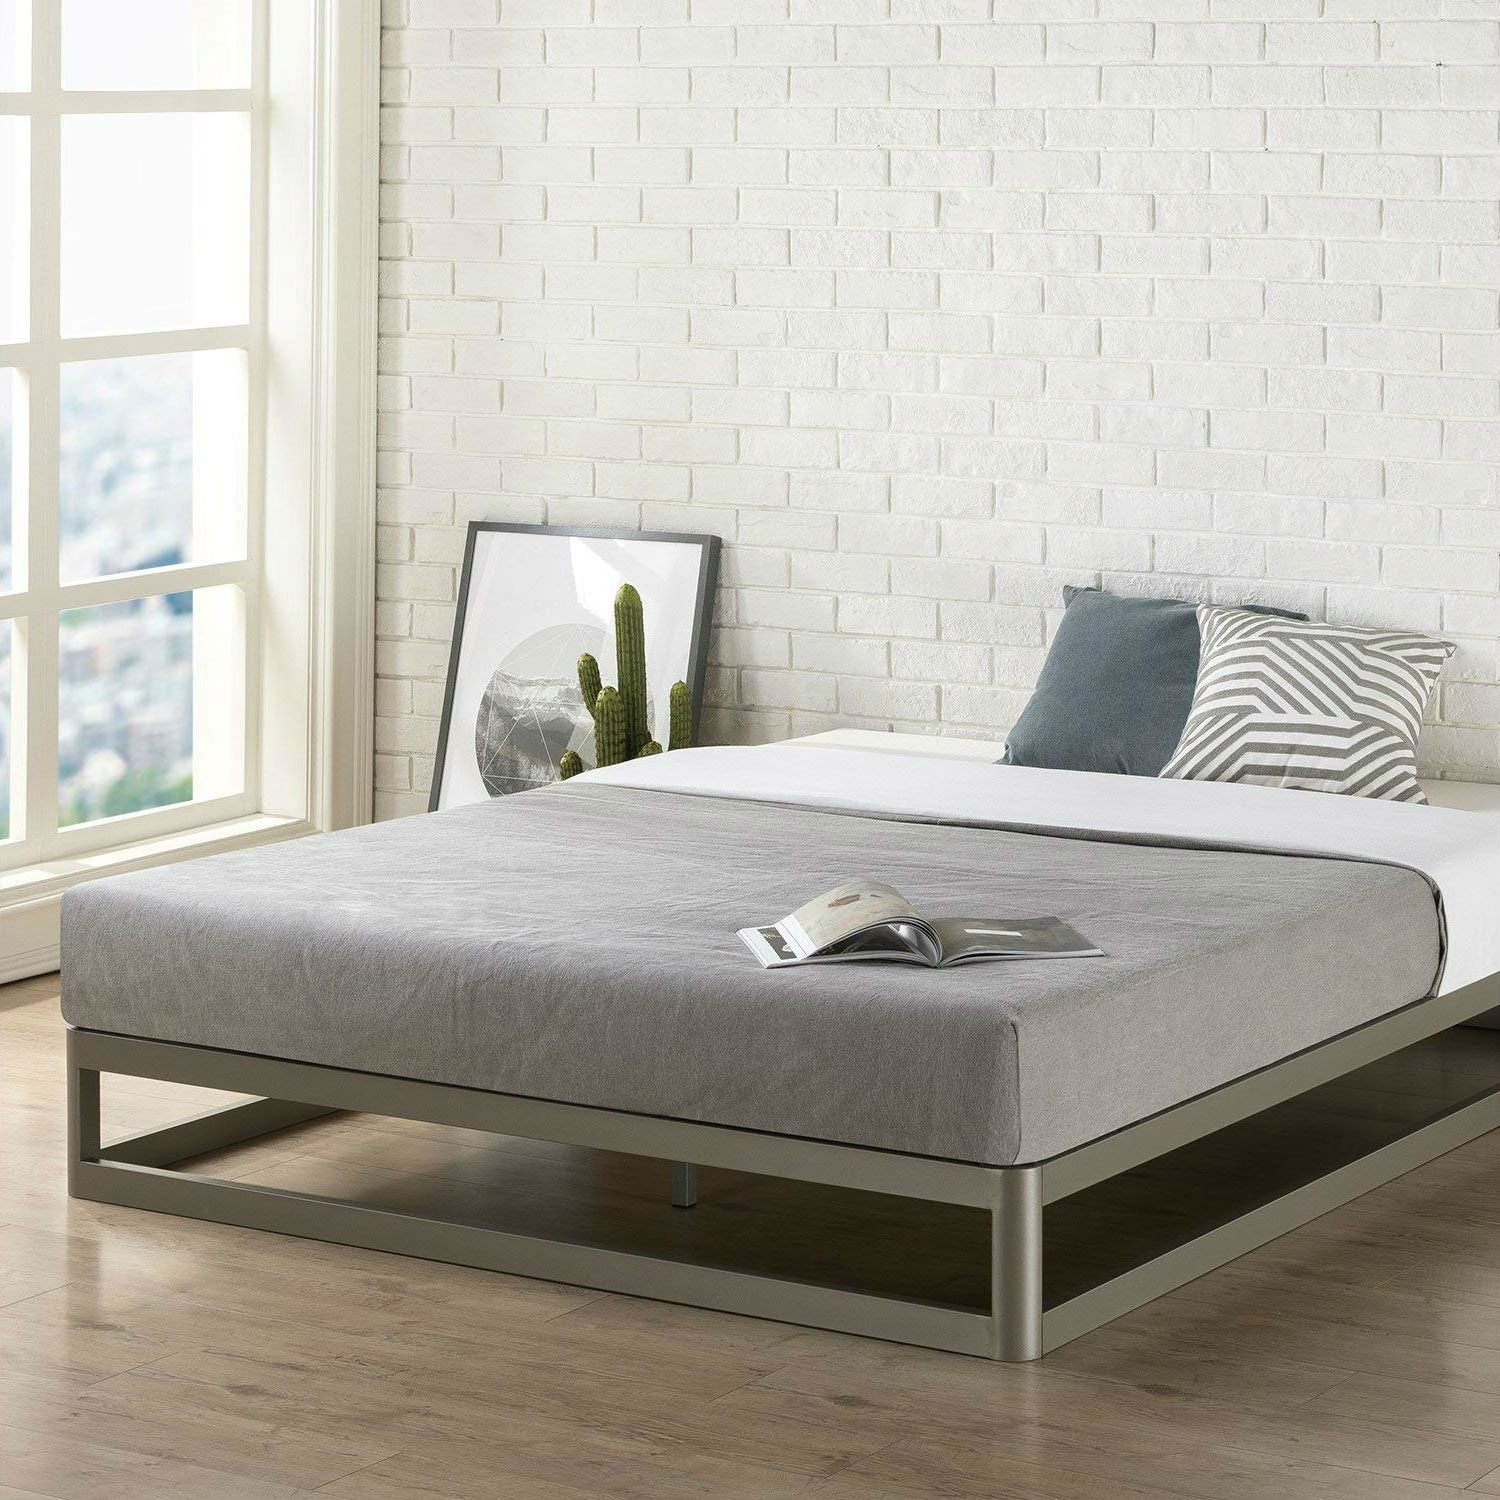 Edris Platform Bed Frame.